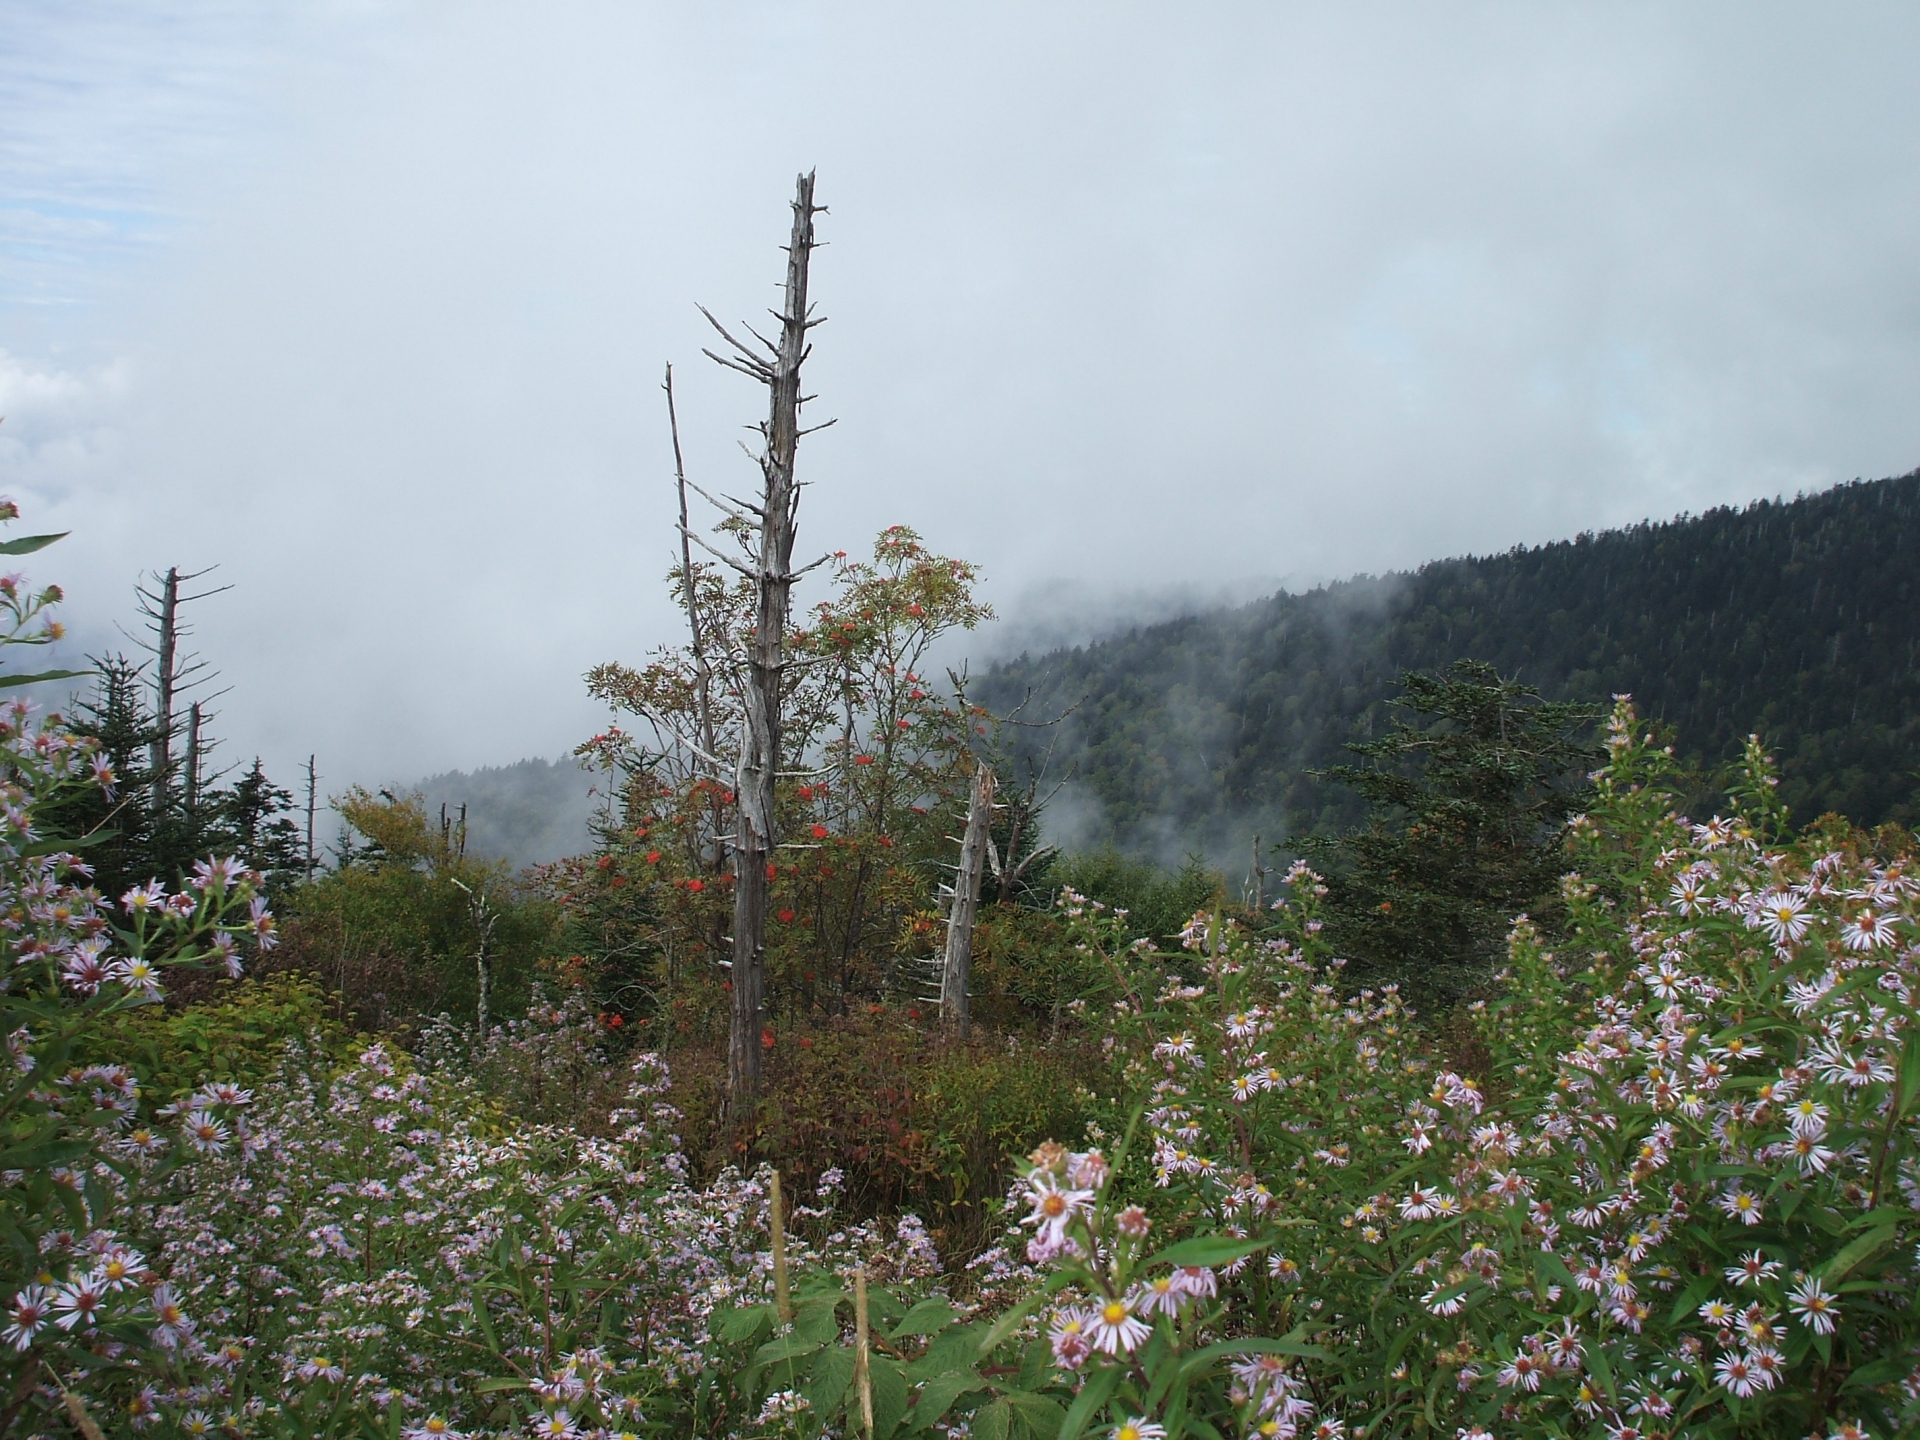 A dead pine tree in the center surrounded by the new life of wild flowers and the smoke of the mountains rising behind it